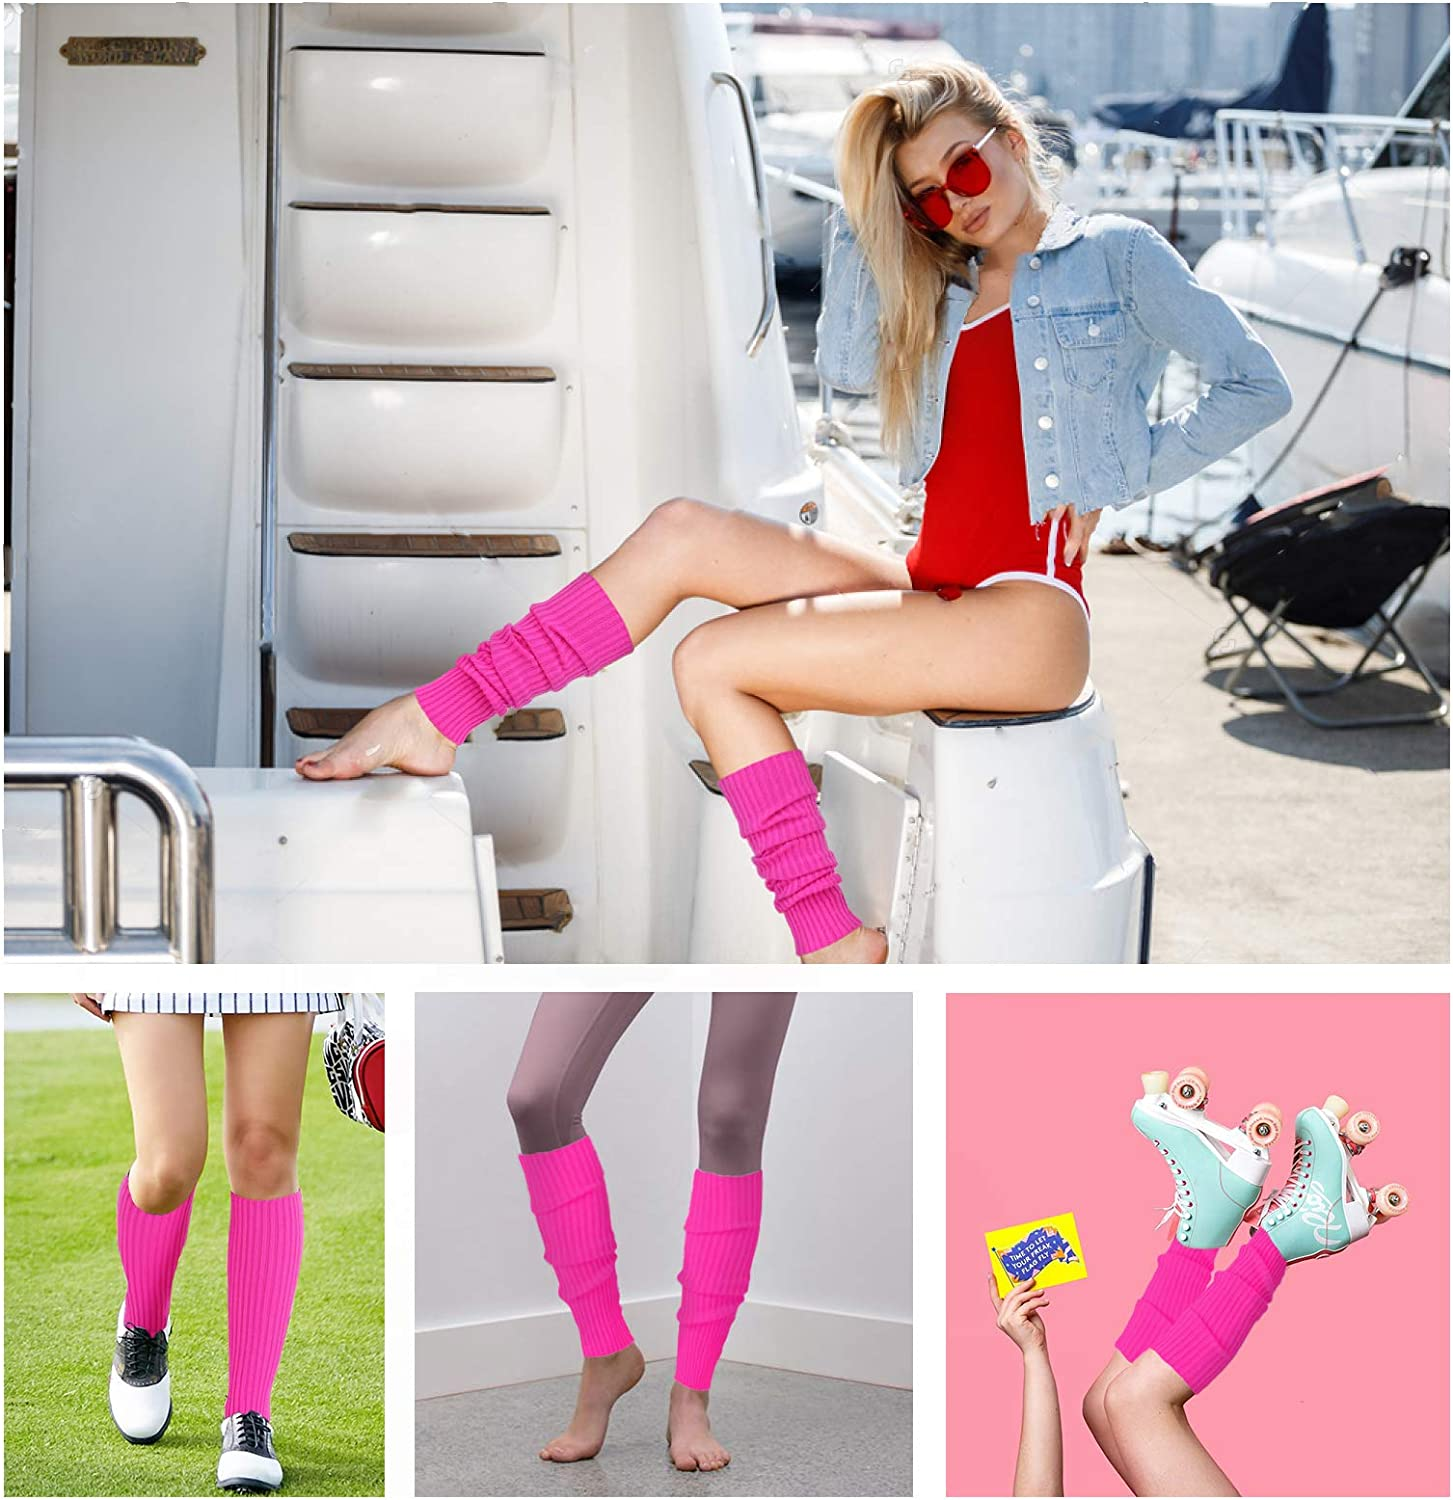 v28 Women Juniors Neon Ribbed Leg Warmers for 80s Eighty's Party Sports Yoga